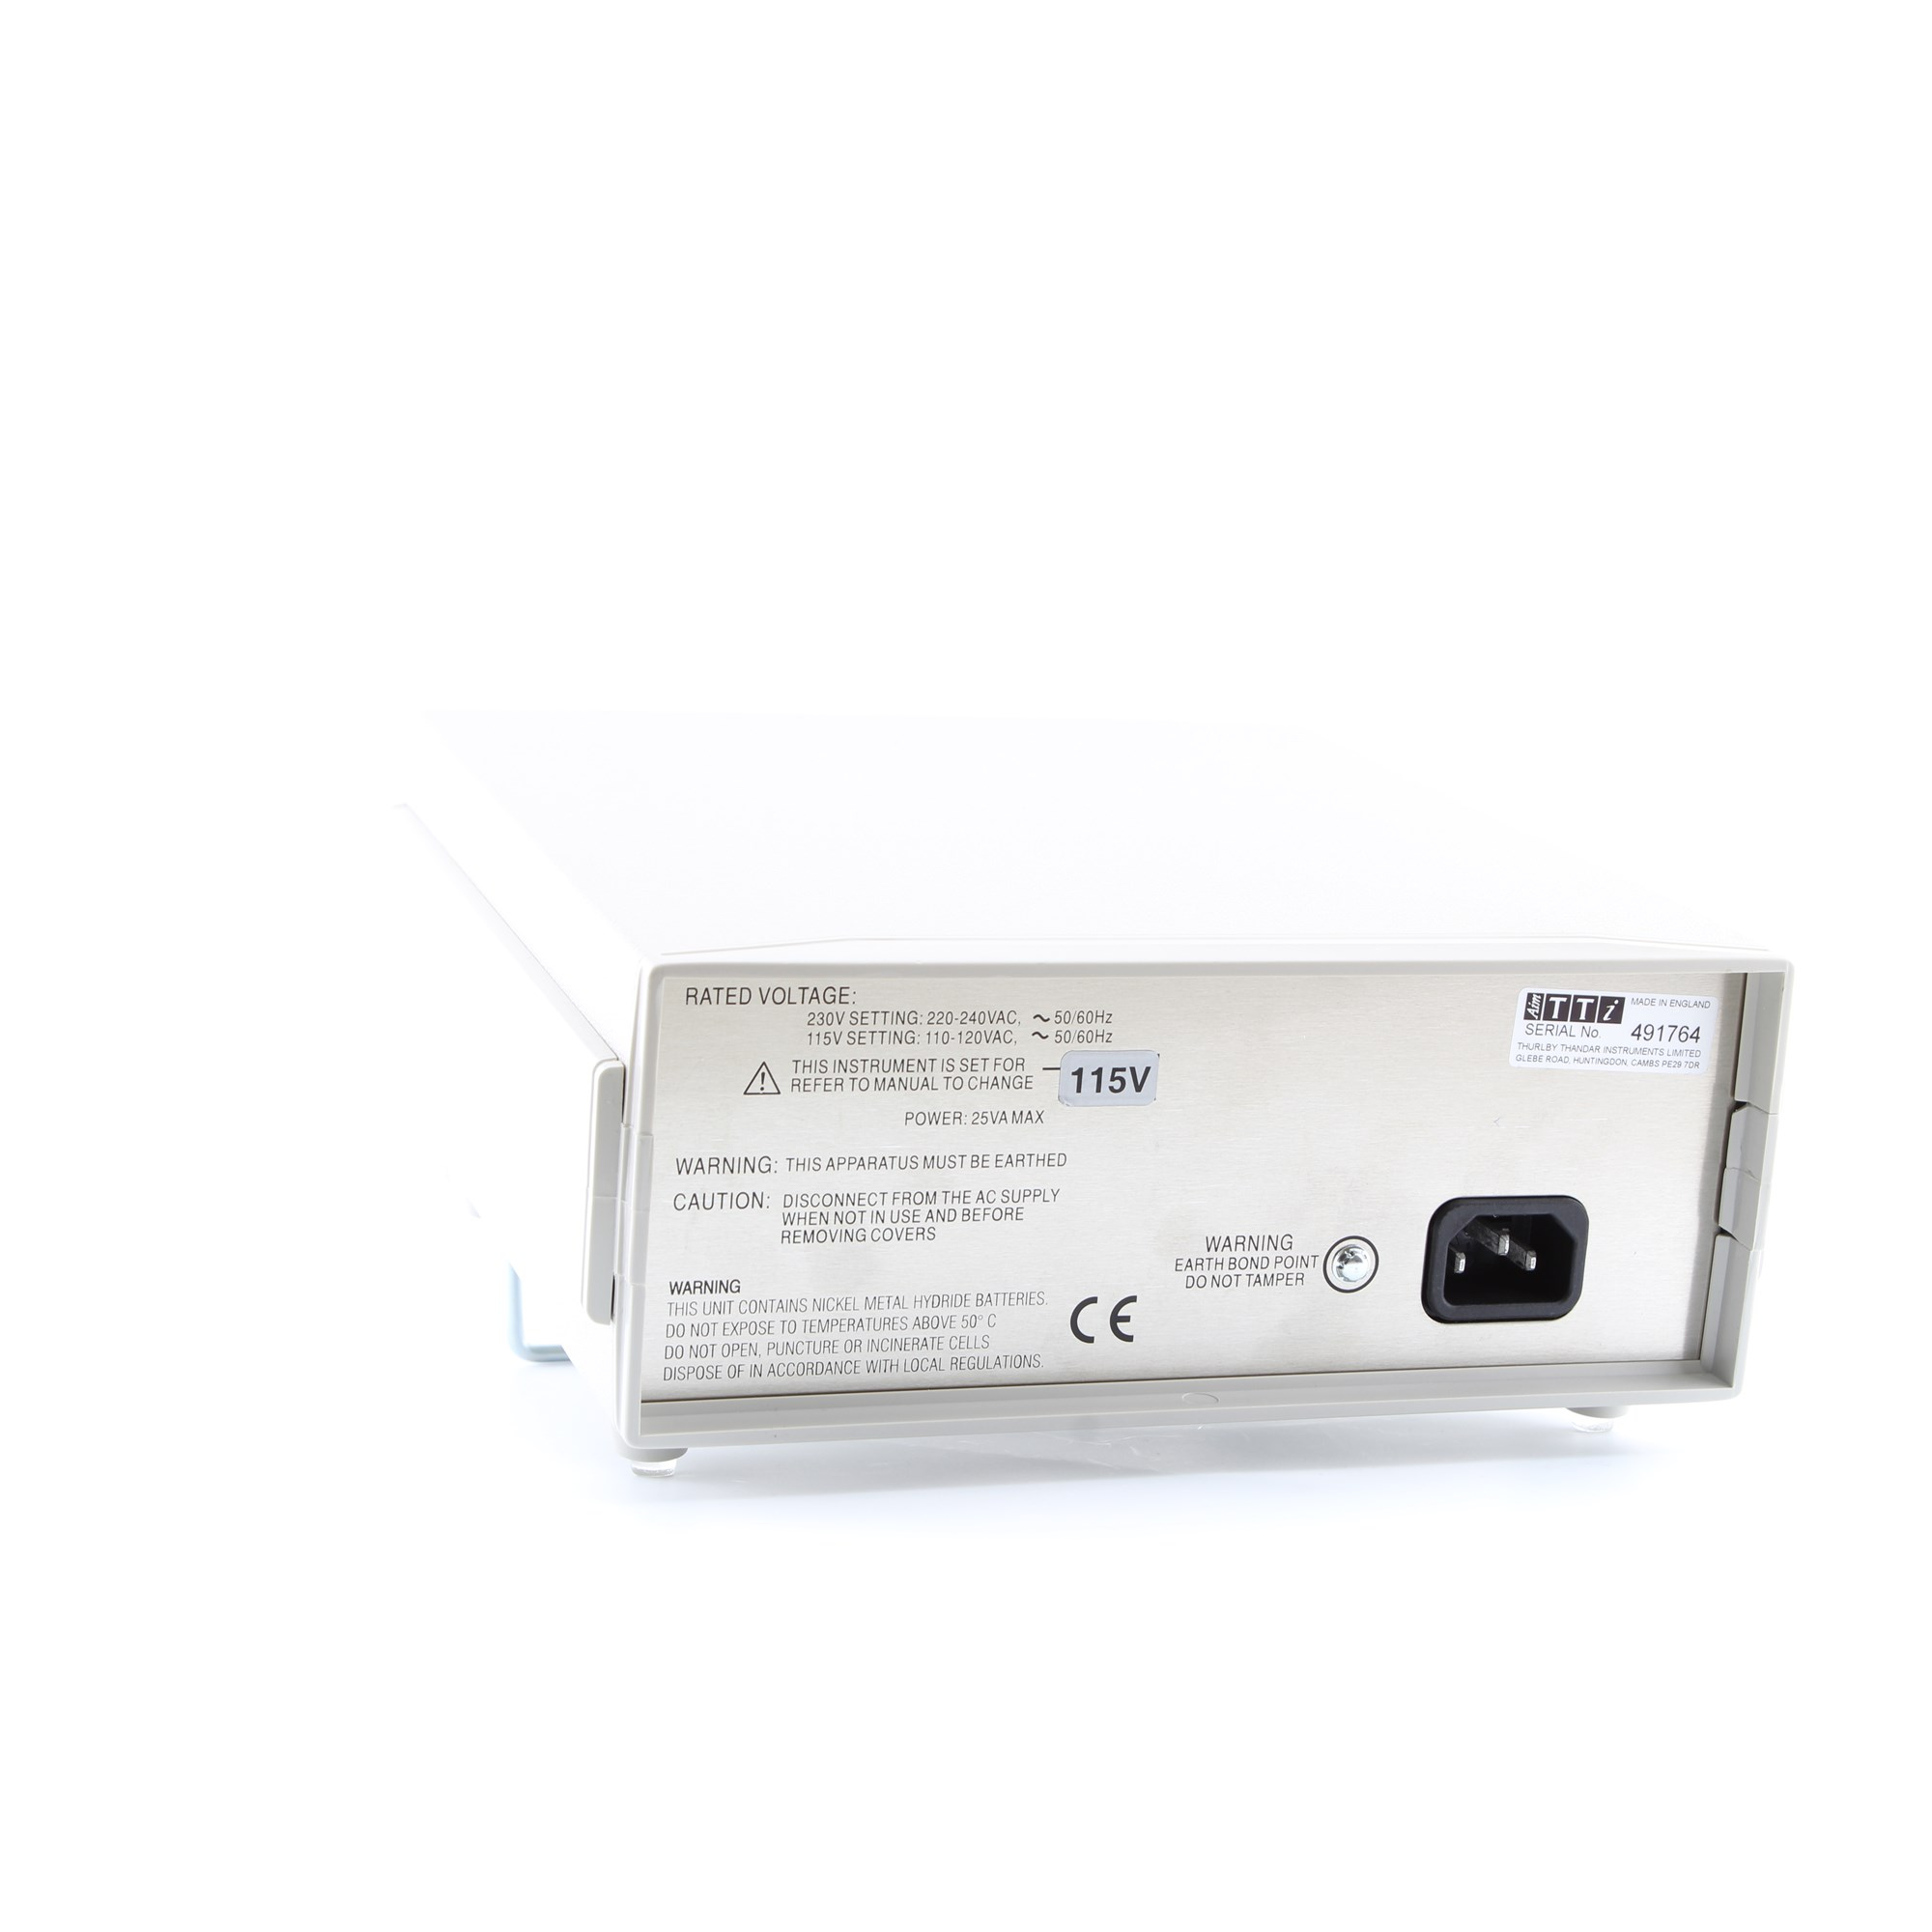 Tti Bs407 Micro Ohm Meter Santronics Ac Dc Voltage Detectors Quickly Test For Energized Circuits